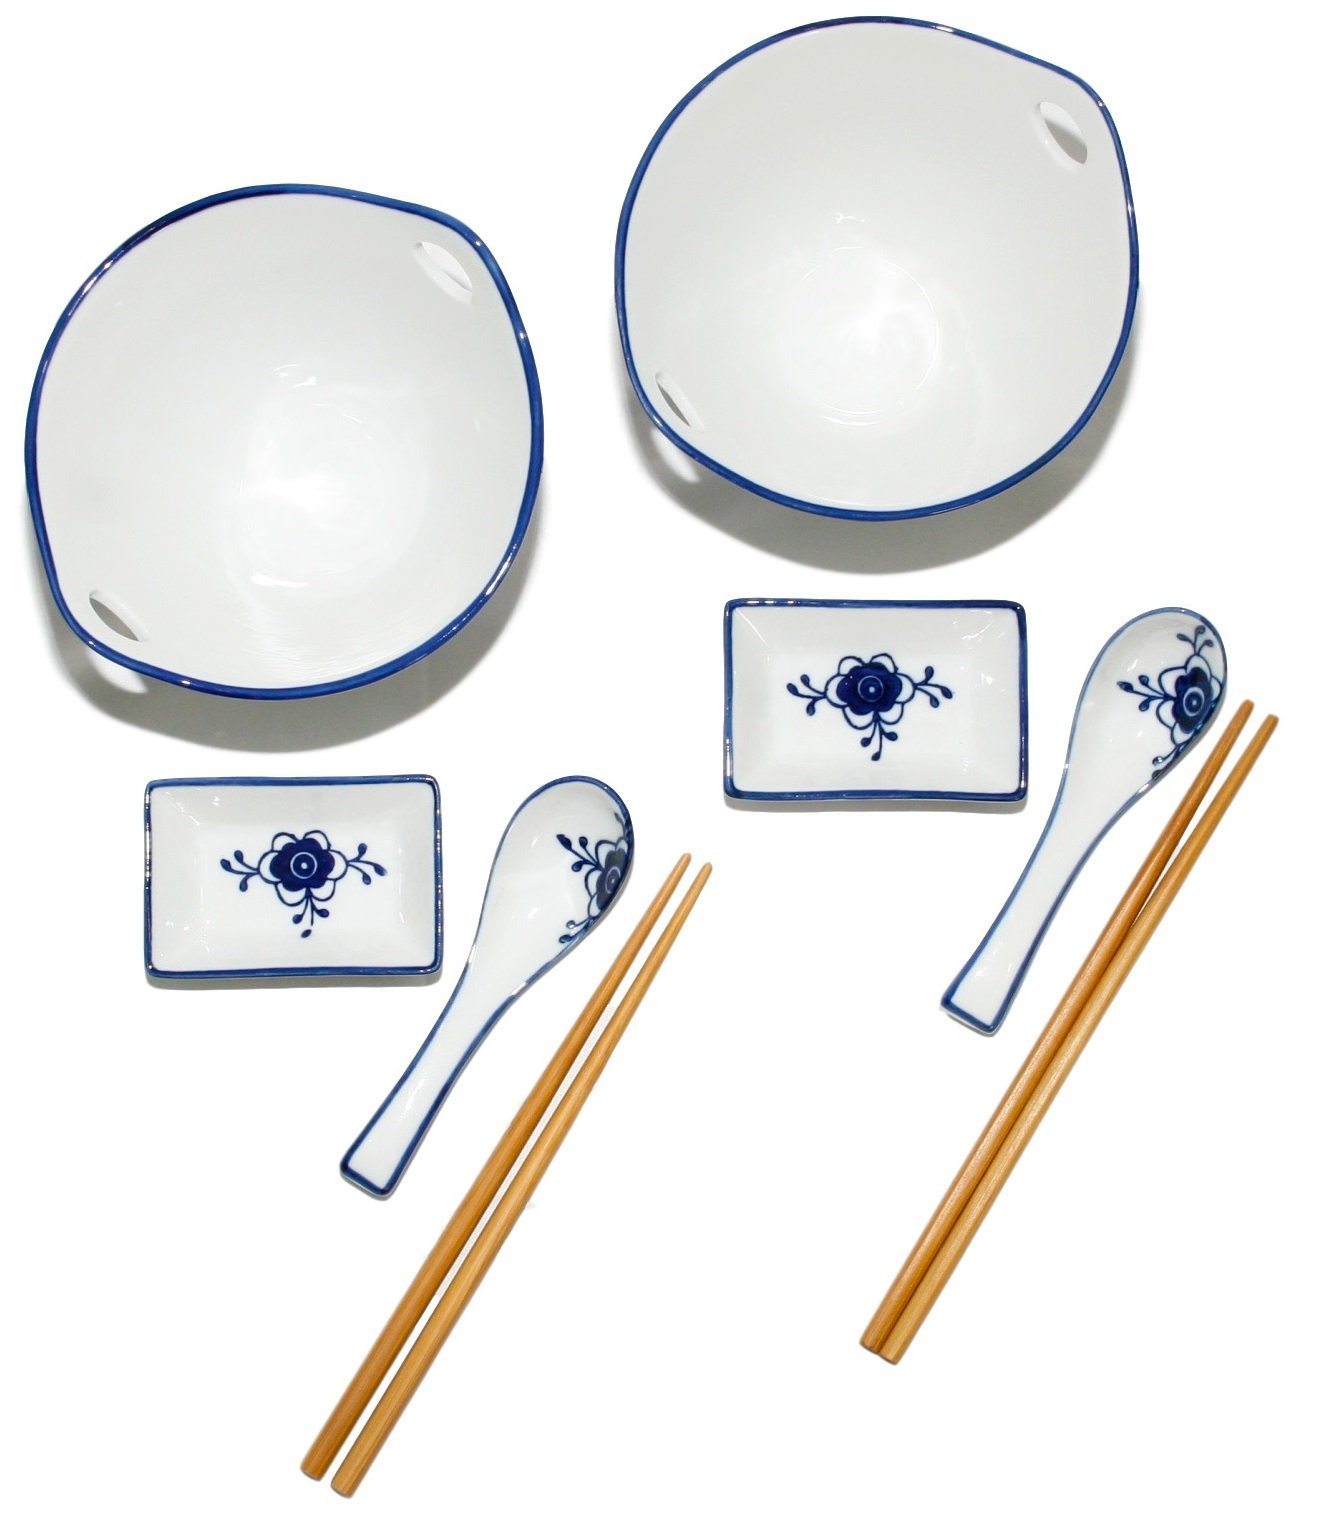 Umami Tableware Blue And White Porcelain Ramen Bowl Set, Soup Bowl With Chopsticks, Sauce Dish, Hooked Spoon Set Of 2, By Umami Tableware